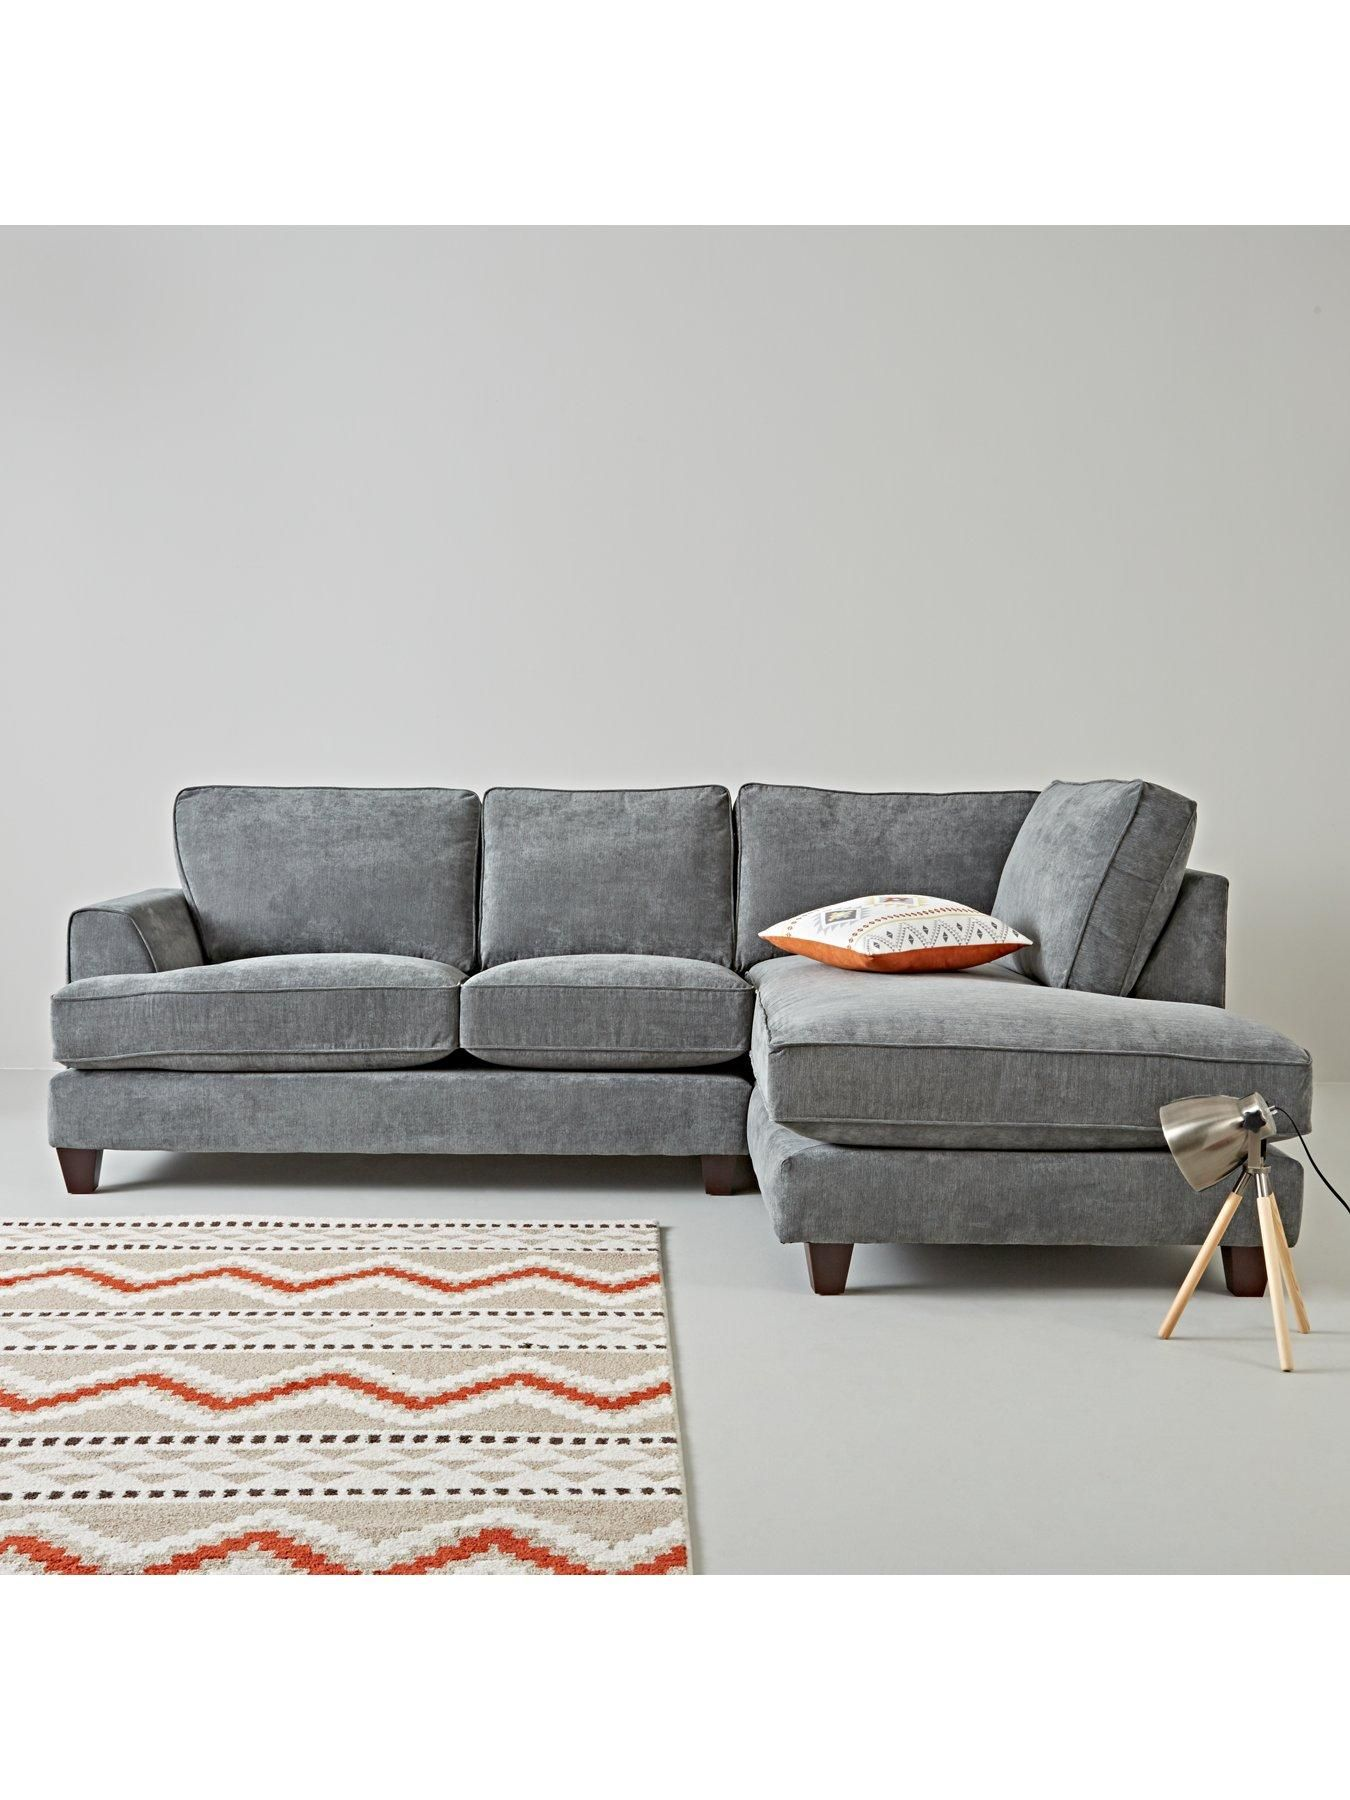 Cavendish New Camden Right Hand Fabric Corner Chaise Sofa In Blush Pink Charcoal